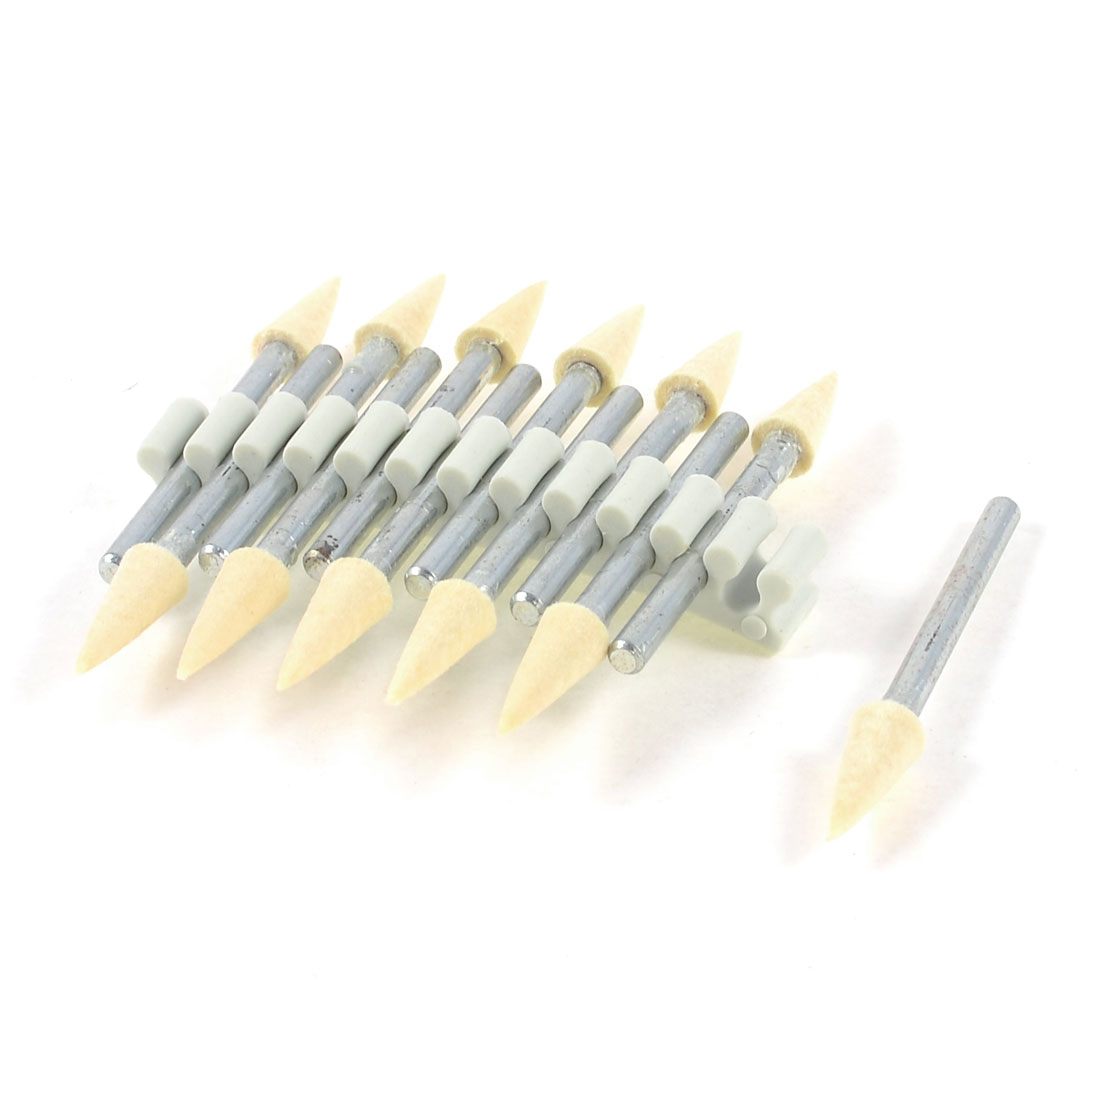 12 Pcs 3mm Shank 5mm Tapered Felt Bobs Polishing Rotary Buffing Bits